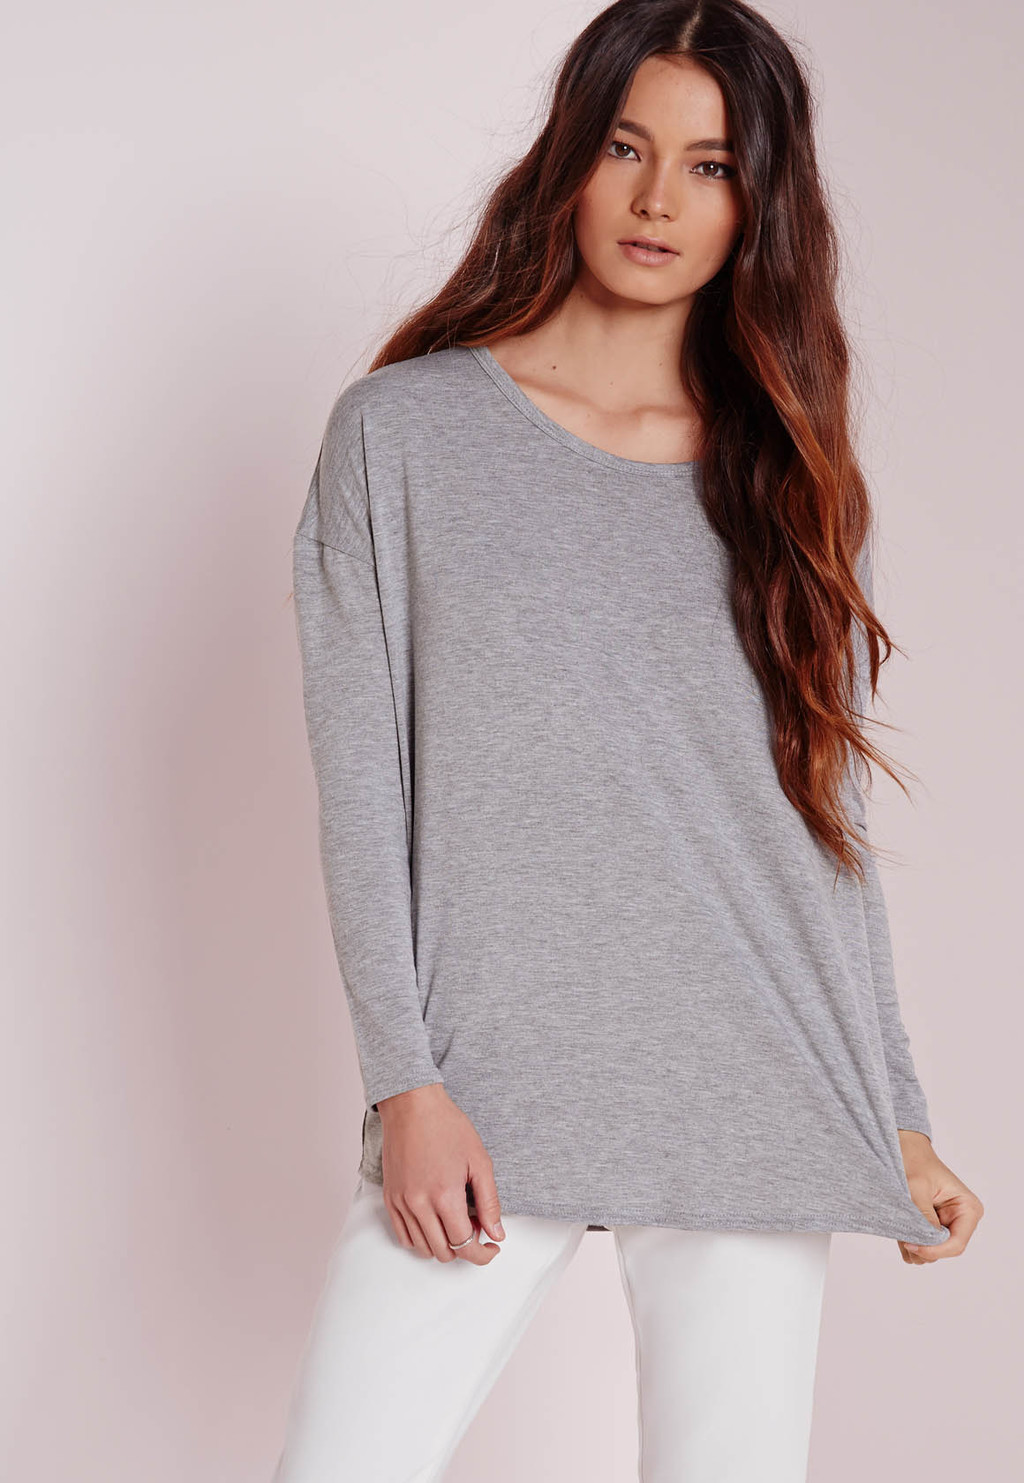 Oversized Raglan Sleeve Tunic Grey, Grey - neckline: round neck; pattern: plain; style: t-shirt; predominant colour: mid grey; occasions: casual; length: standard; fibres: polyester/polyamide - stretch; fit: loose; sleeve length: long sleeve; sleeve style: standard; pattern type: fabric; texture group: jersey - stretchy/drapey; season: a/w 2015